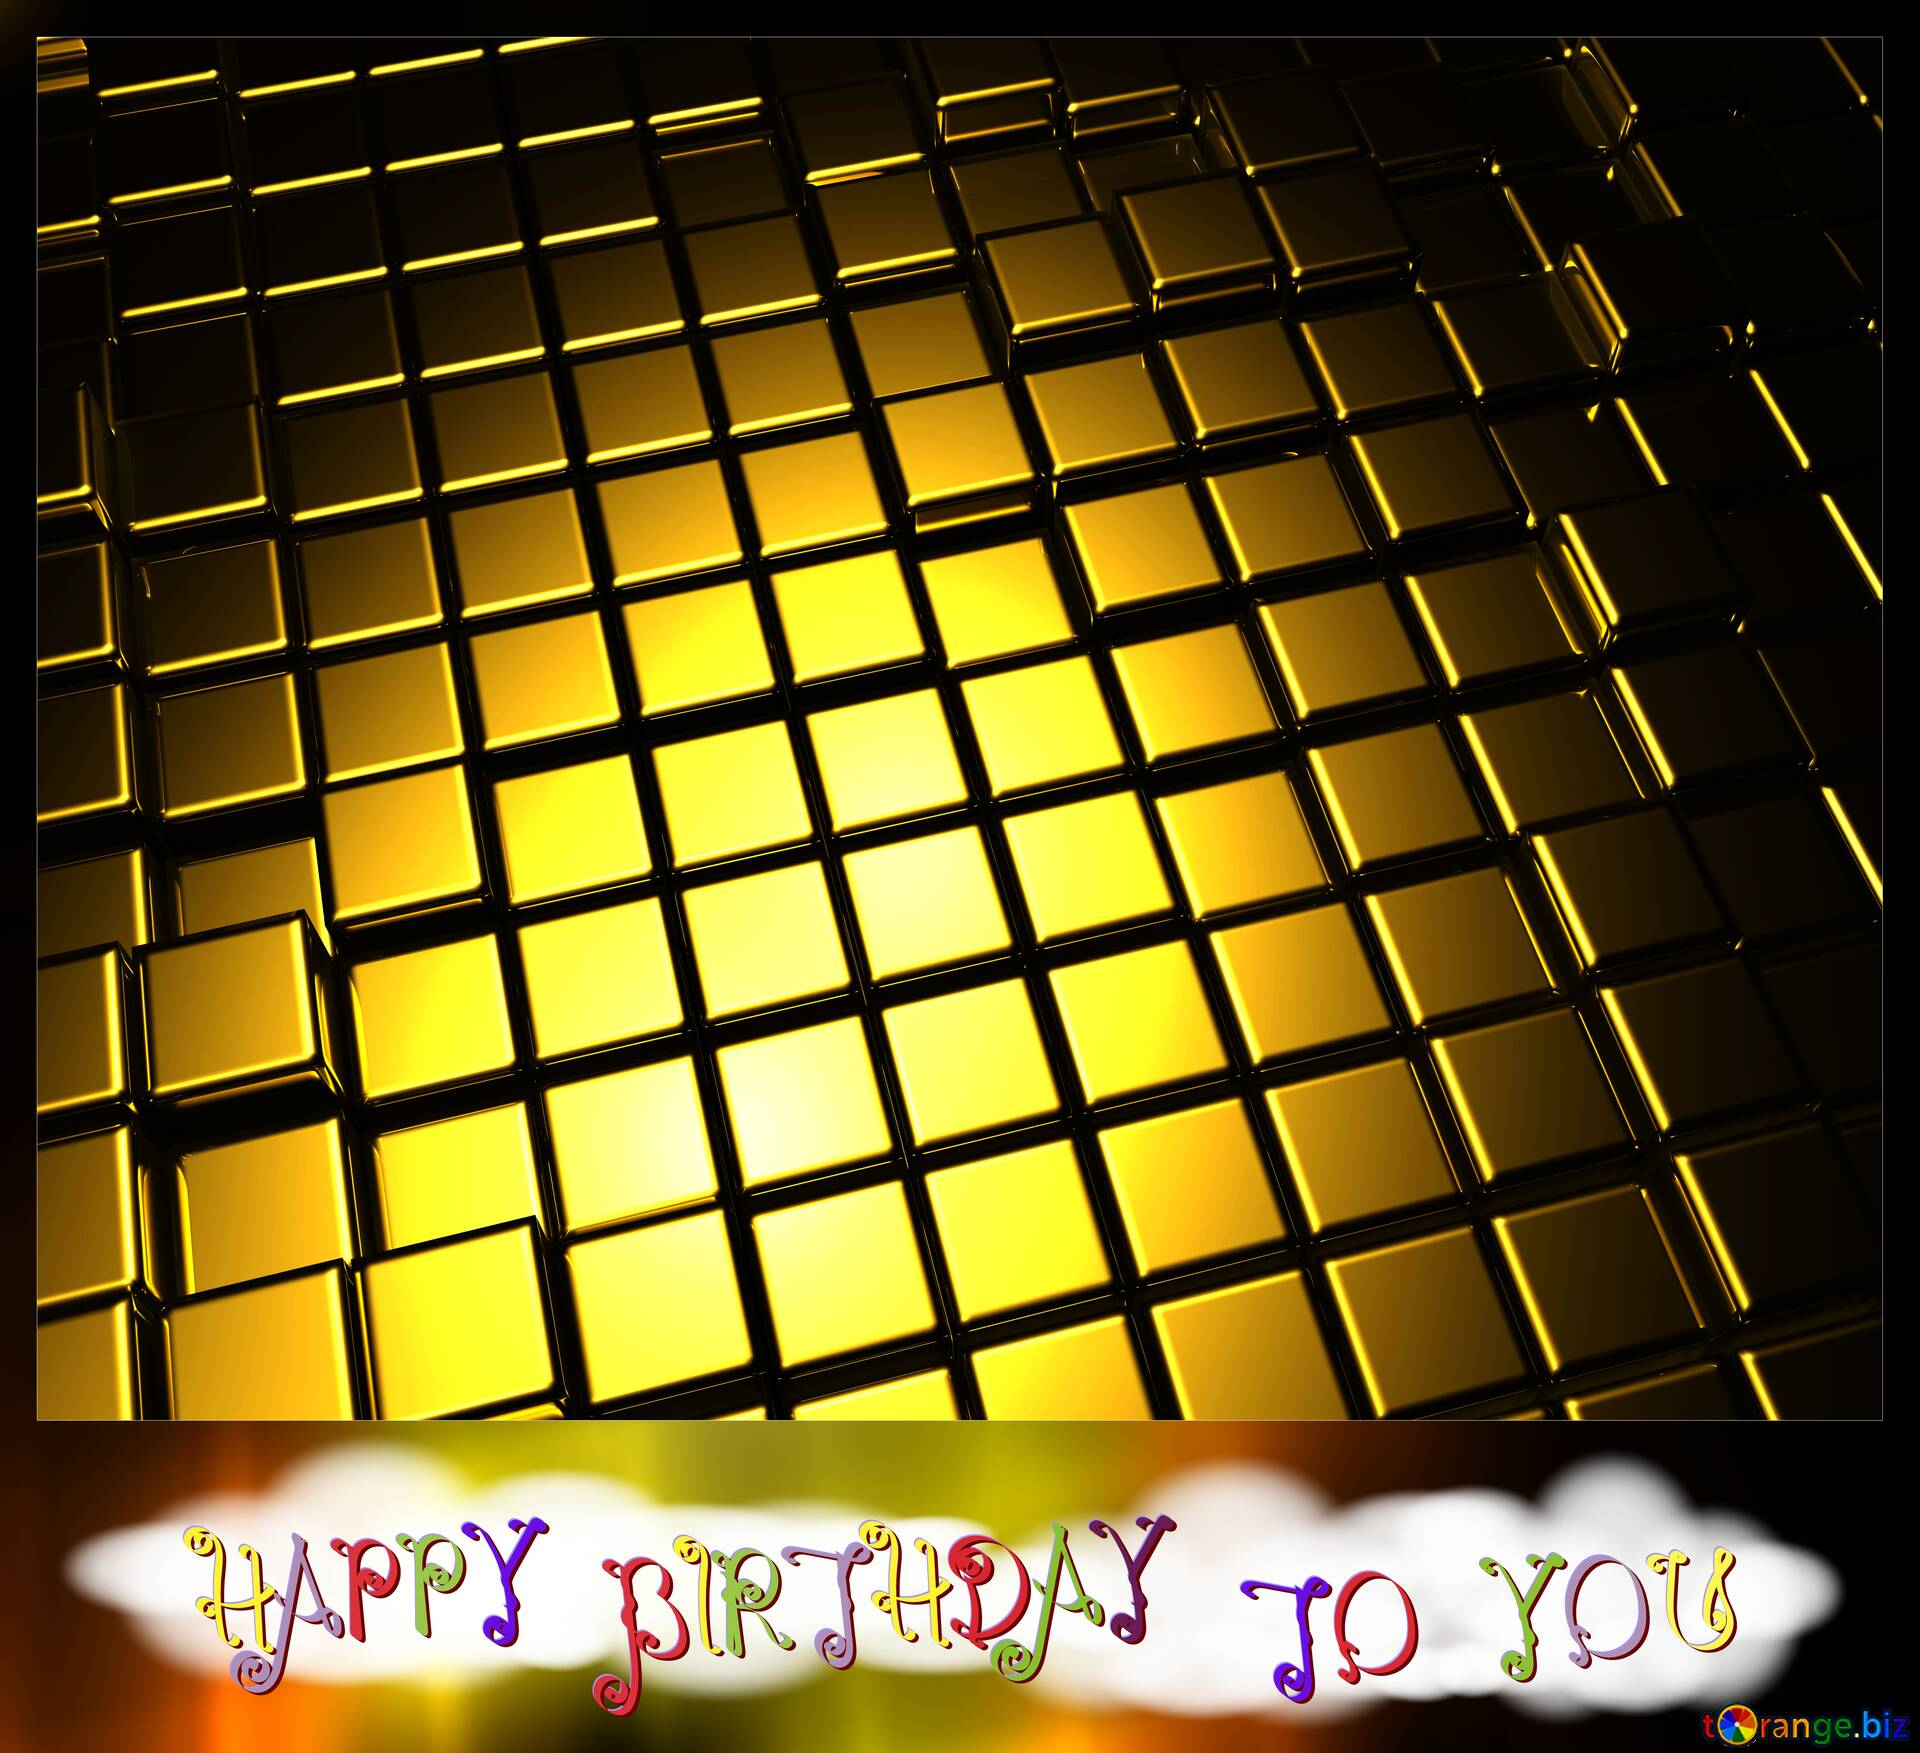 happy birthday blank card background cube abstract gold metal 3d